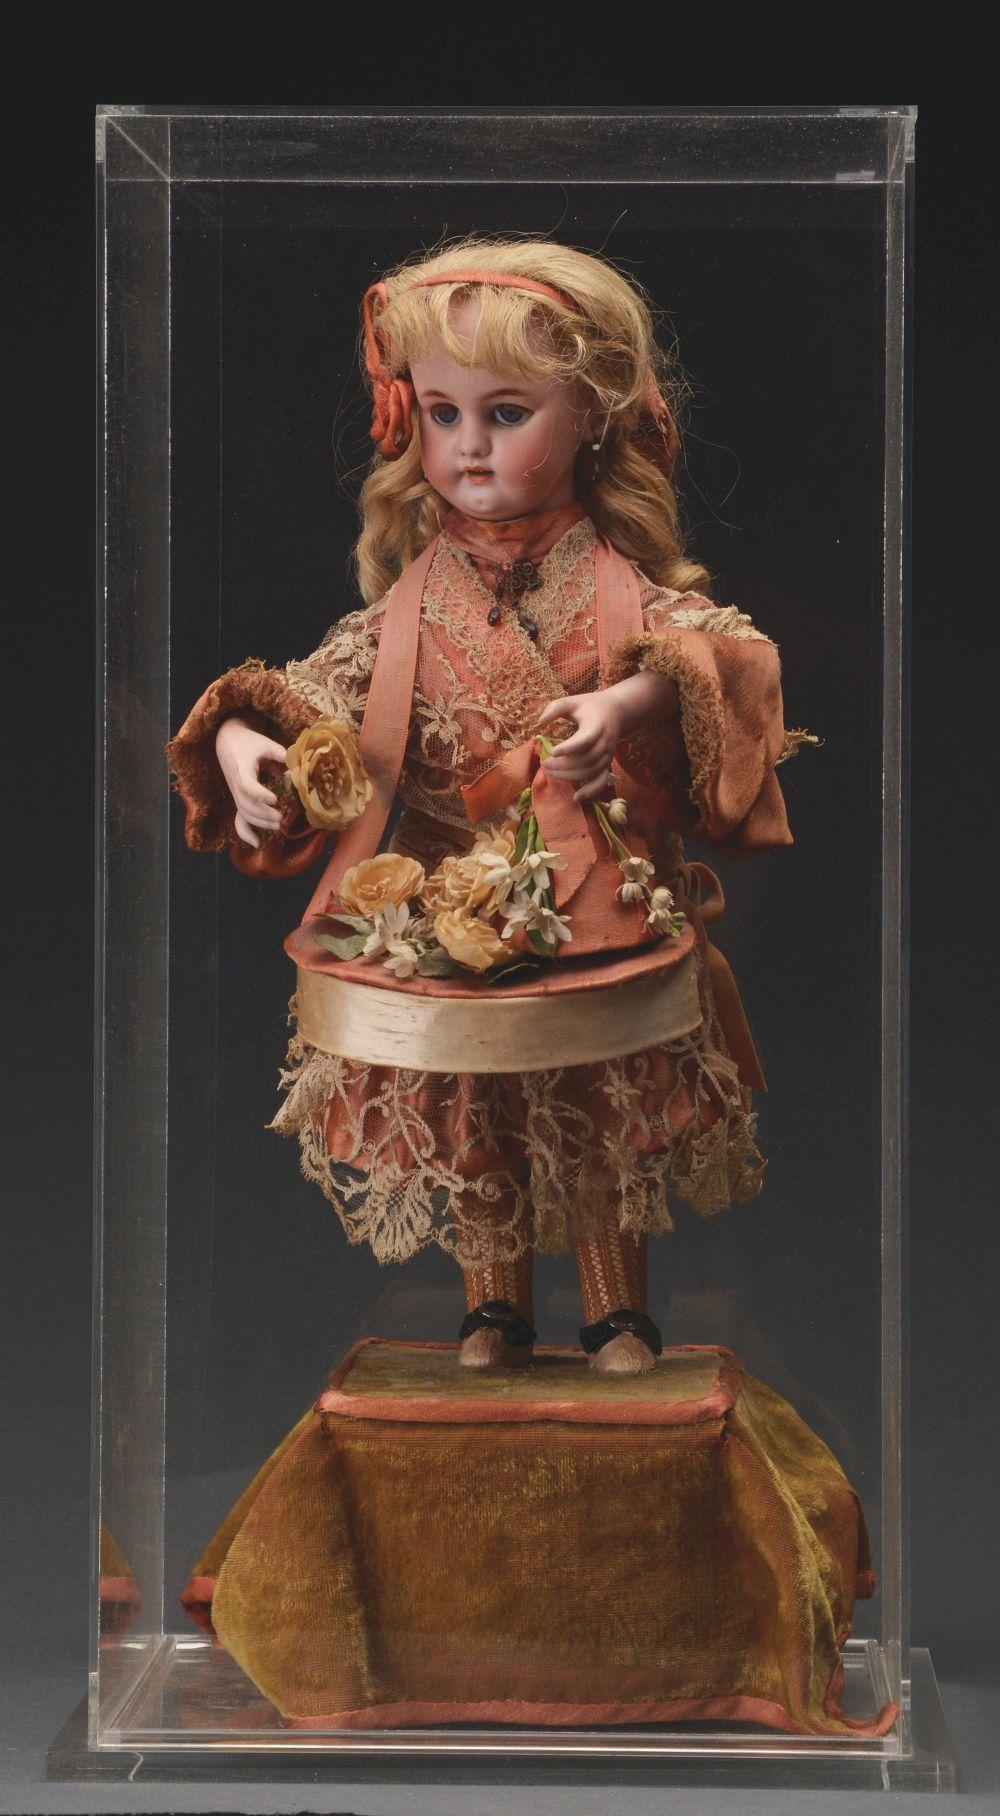 French Musical Automaton Doll in Display Case.